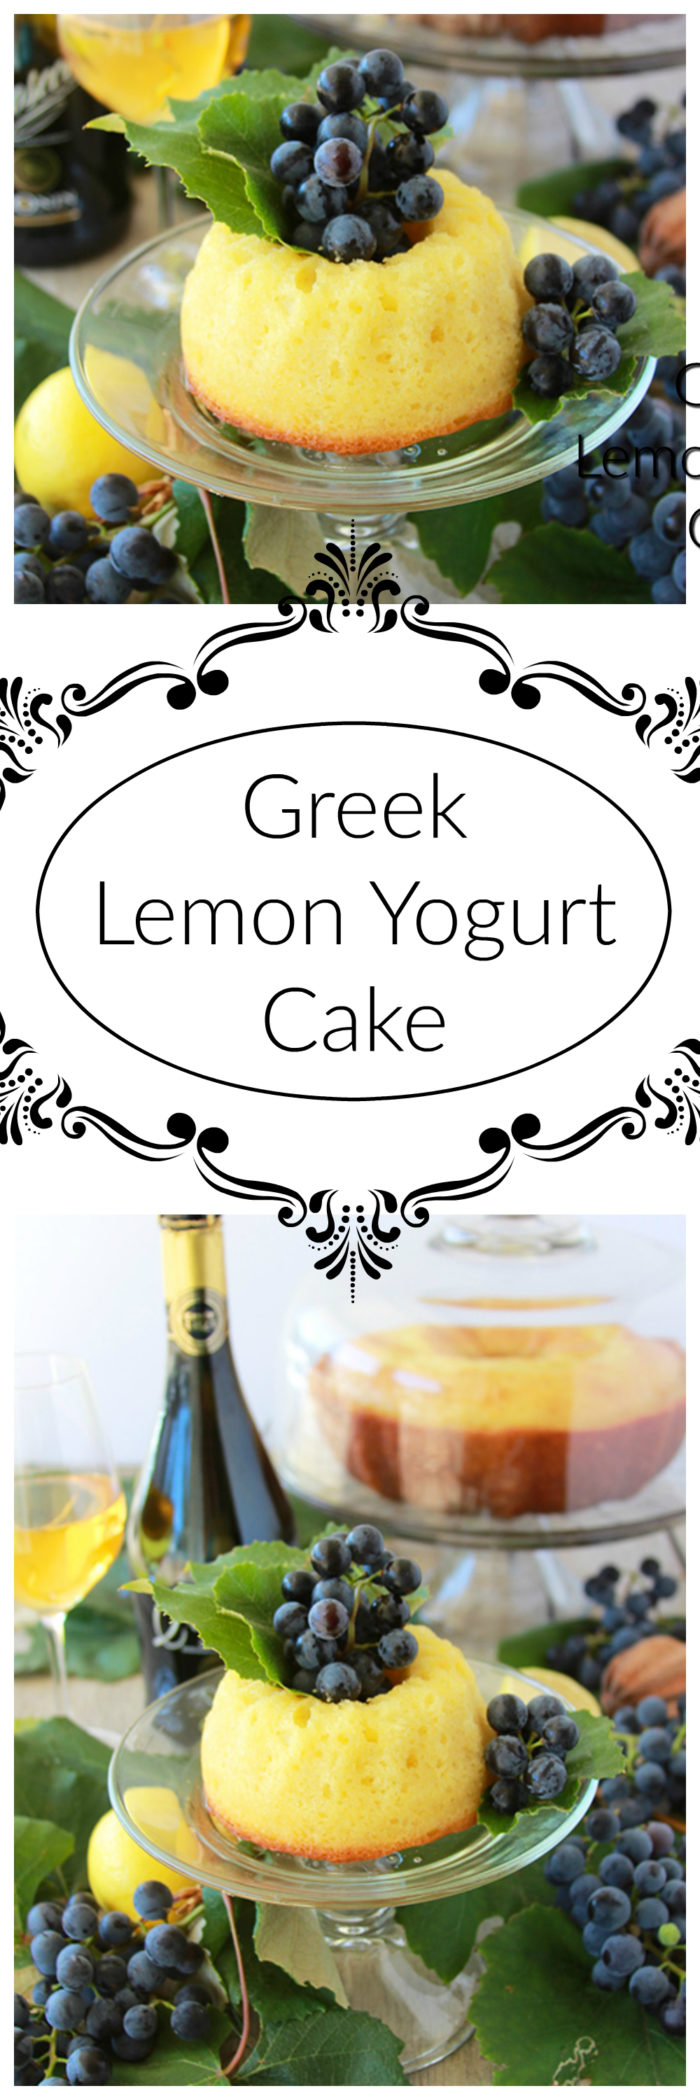 Greek Lemon Yogurt Cake on www.cookingwithruthie.com is a wonderfully moist cake called Yaourtopita in Greece is even better the day after it's made!